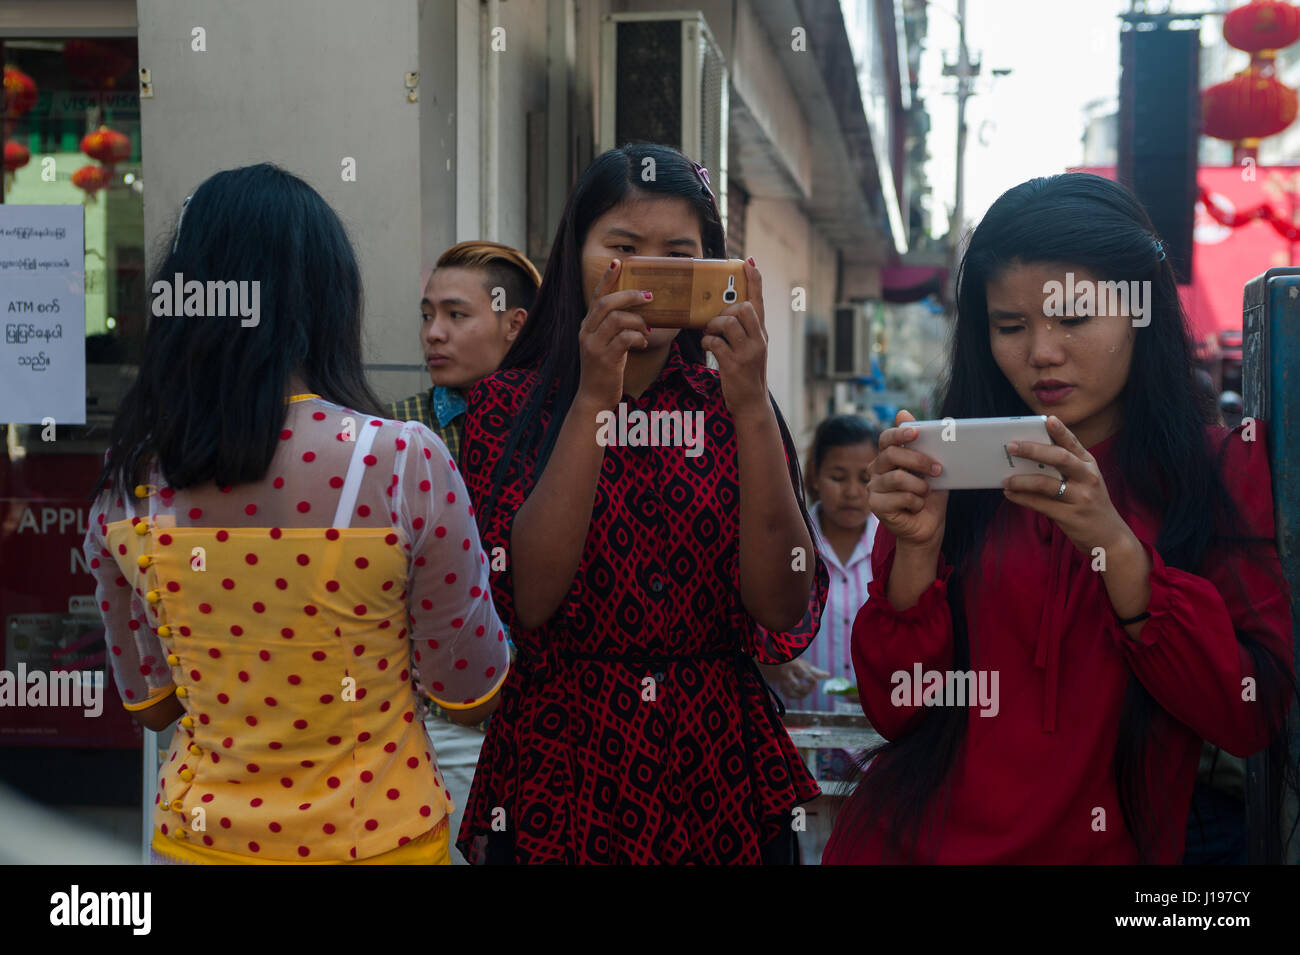 28.01.2017, Yangon, Myanmar, Asia - Young women look at their smartphones during Chinese New Year's celebrations. - Stock Image